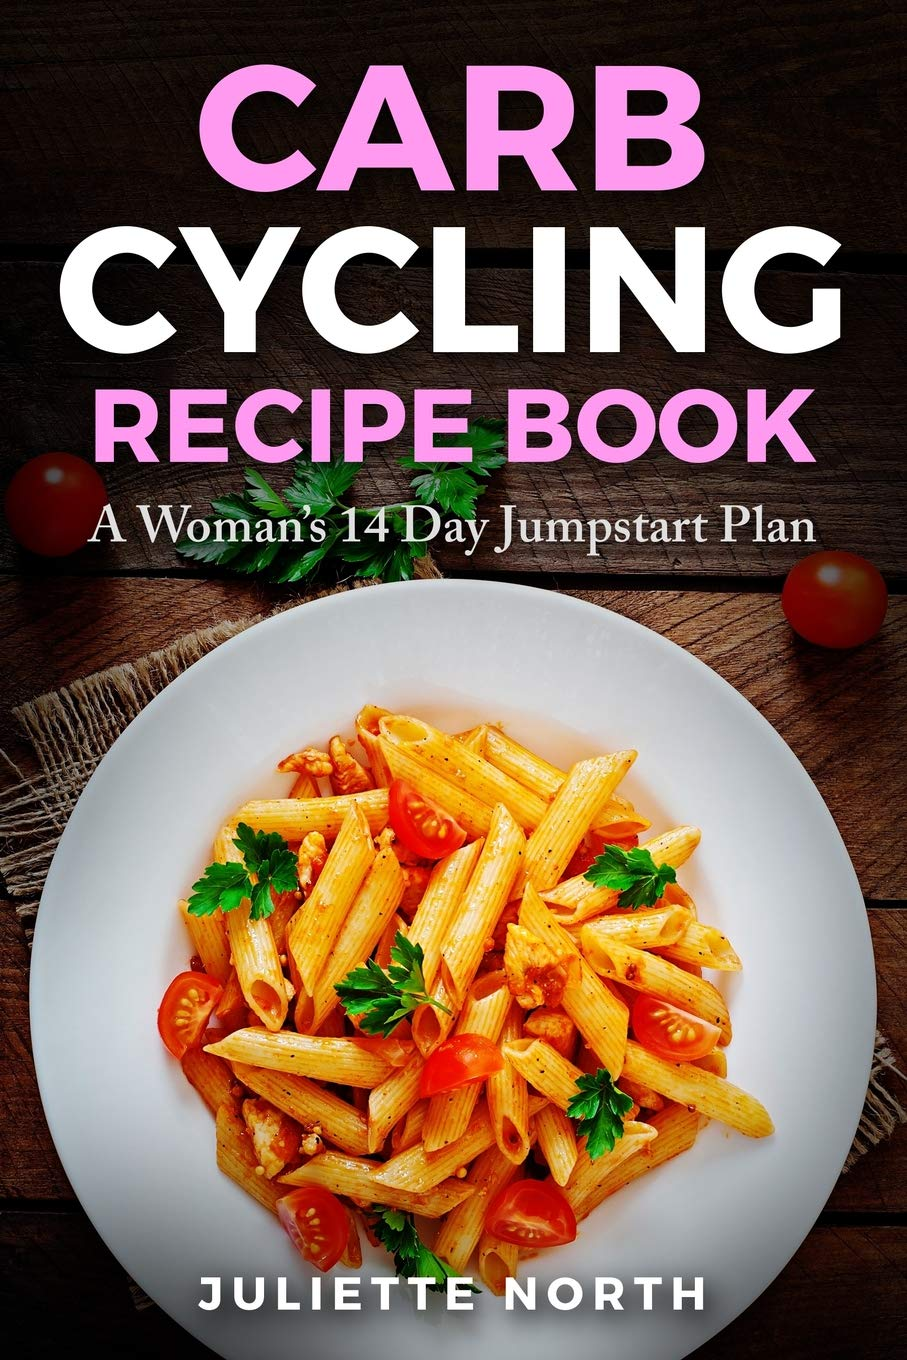 Carb Cycling Recipe Book Jumpstart product image